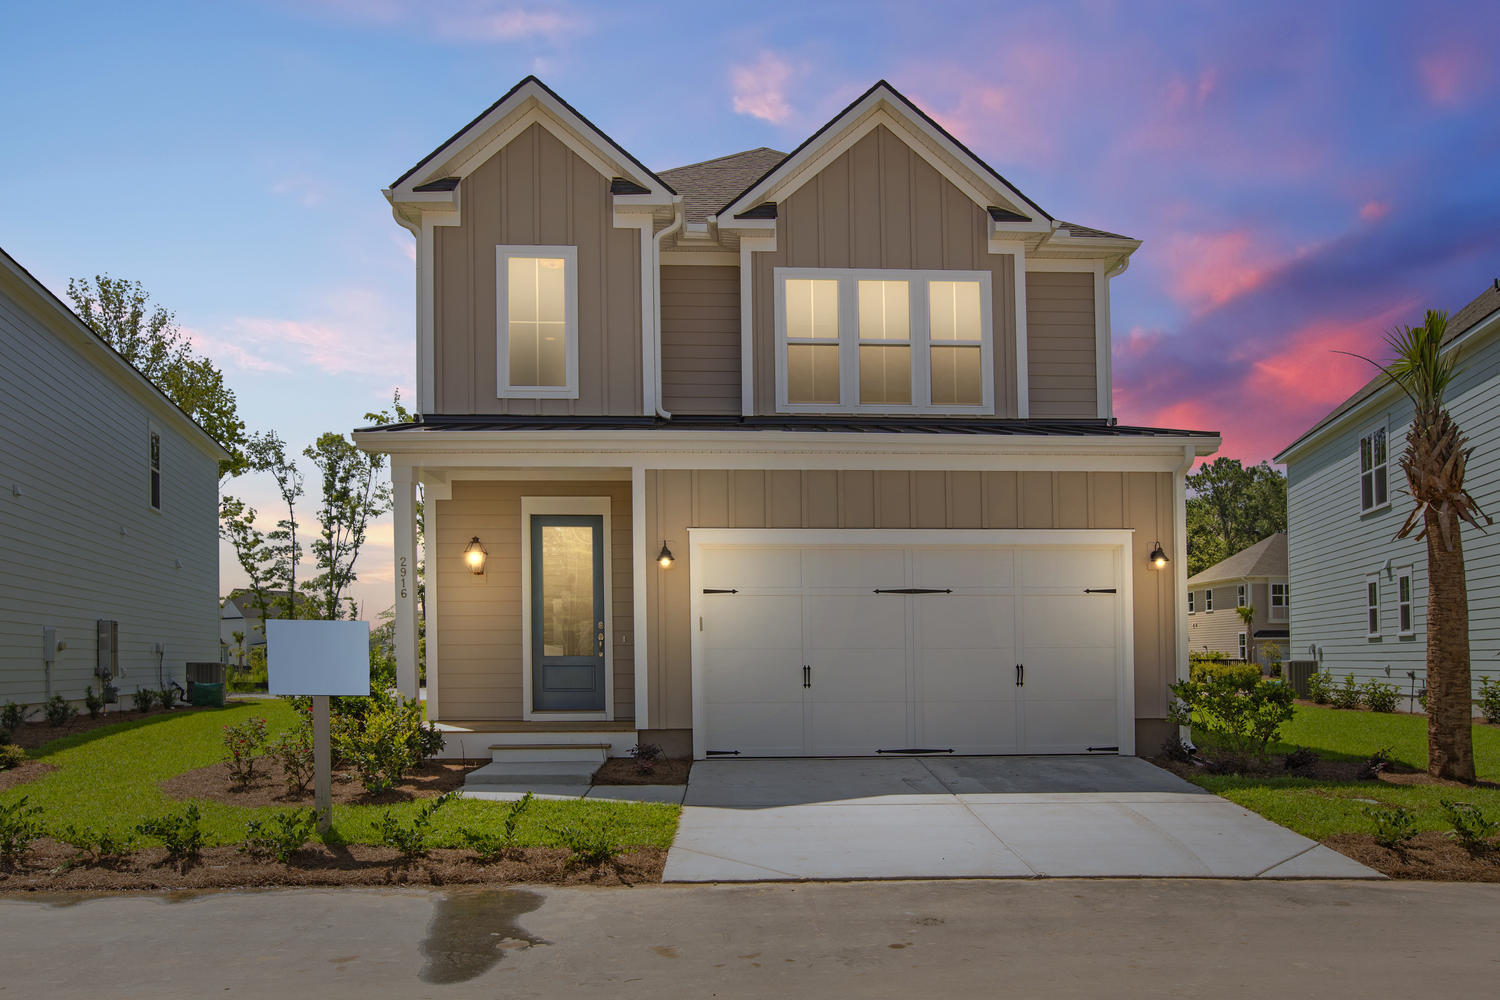 Dunes West Homes For Sale - 2958 Clearwater, Mount Pleasant, SC - 22